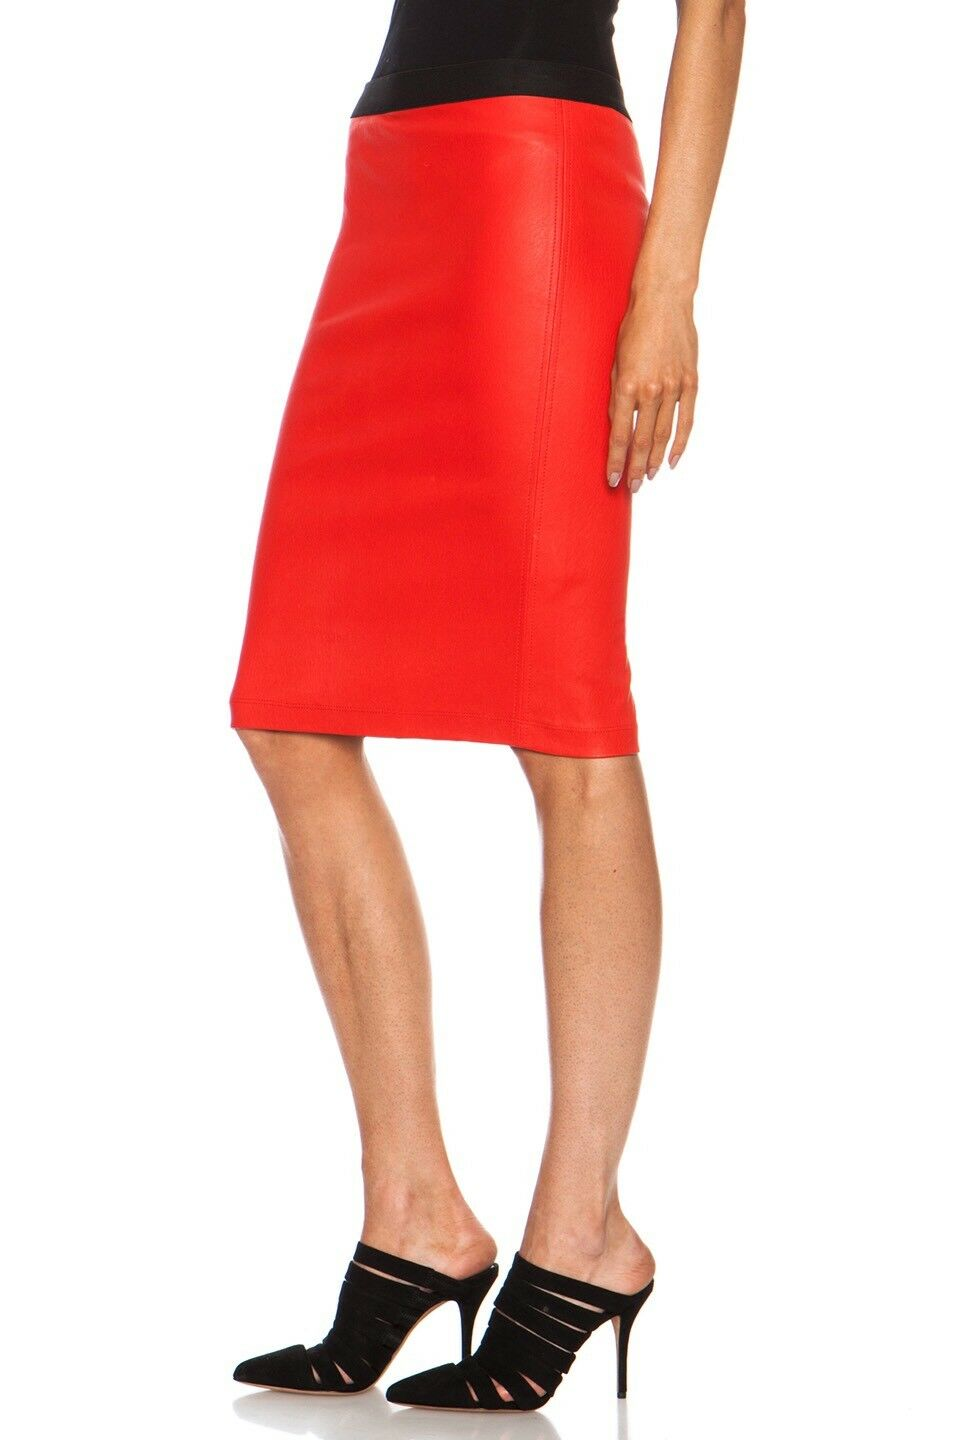 800 HELMUT LANG PLONGE LEATHER PENCIL SKIRT, SZ 2 VEIN RED INCREDIBLY RARE